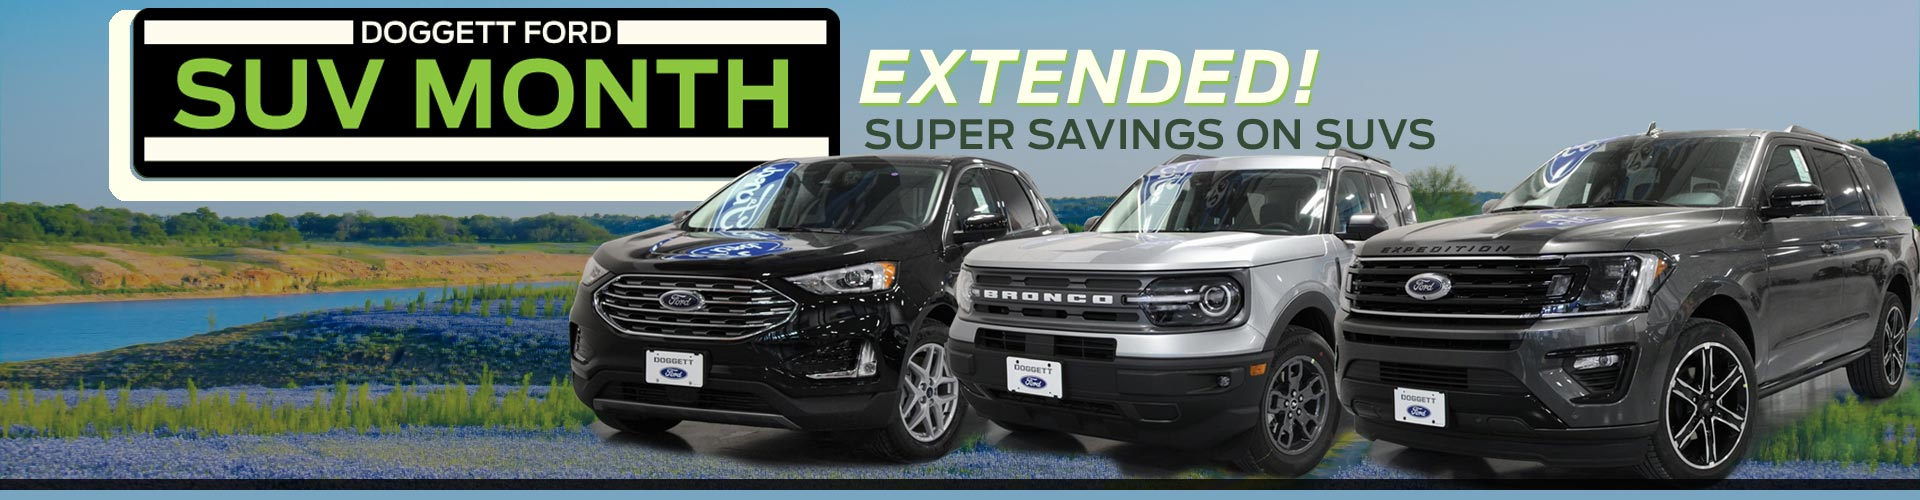 Suv Month Super Savings Wide May Hero Green Extended Doggett Ford Lp 1920w